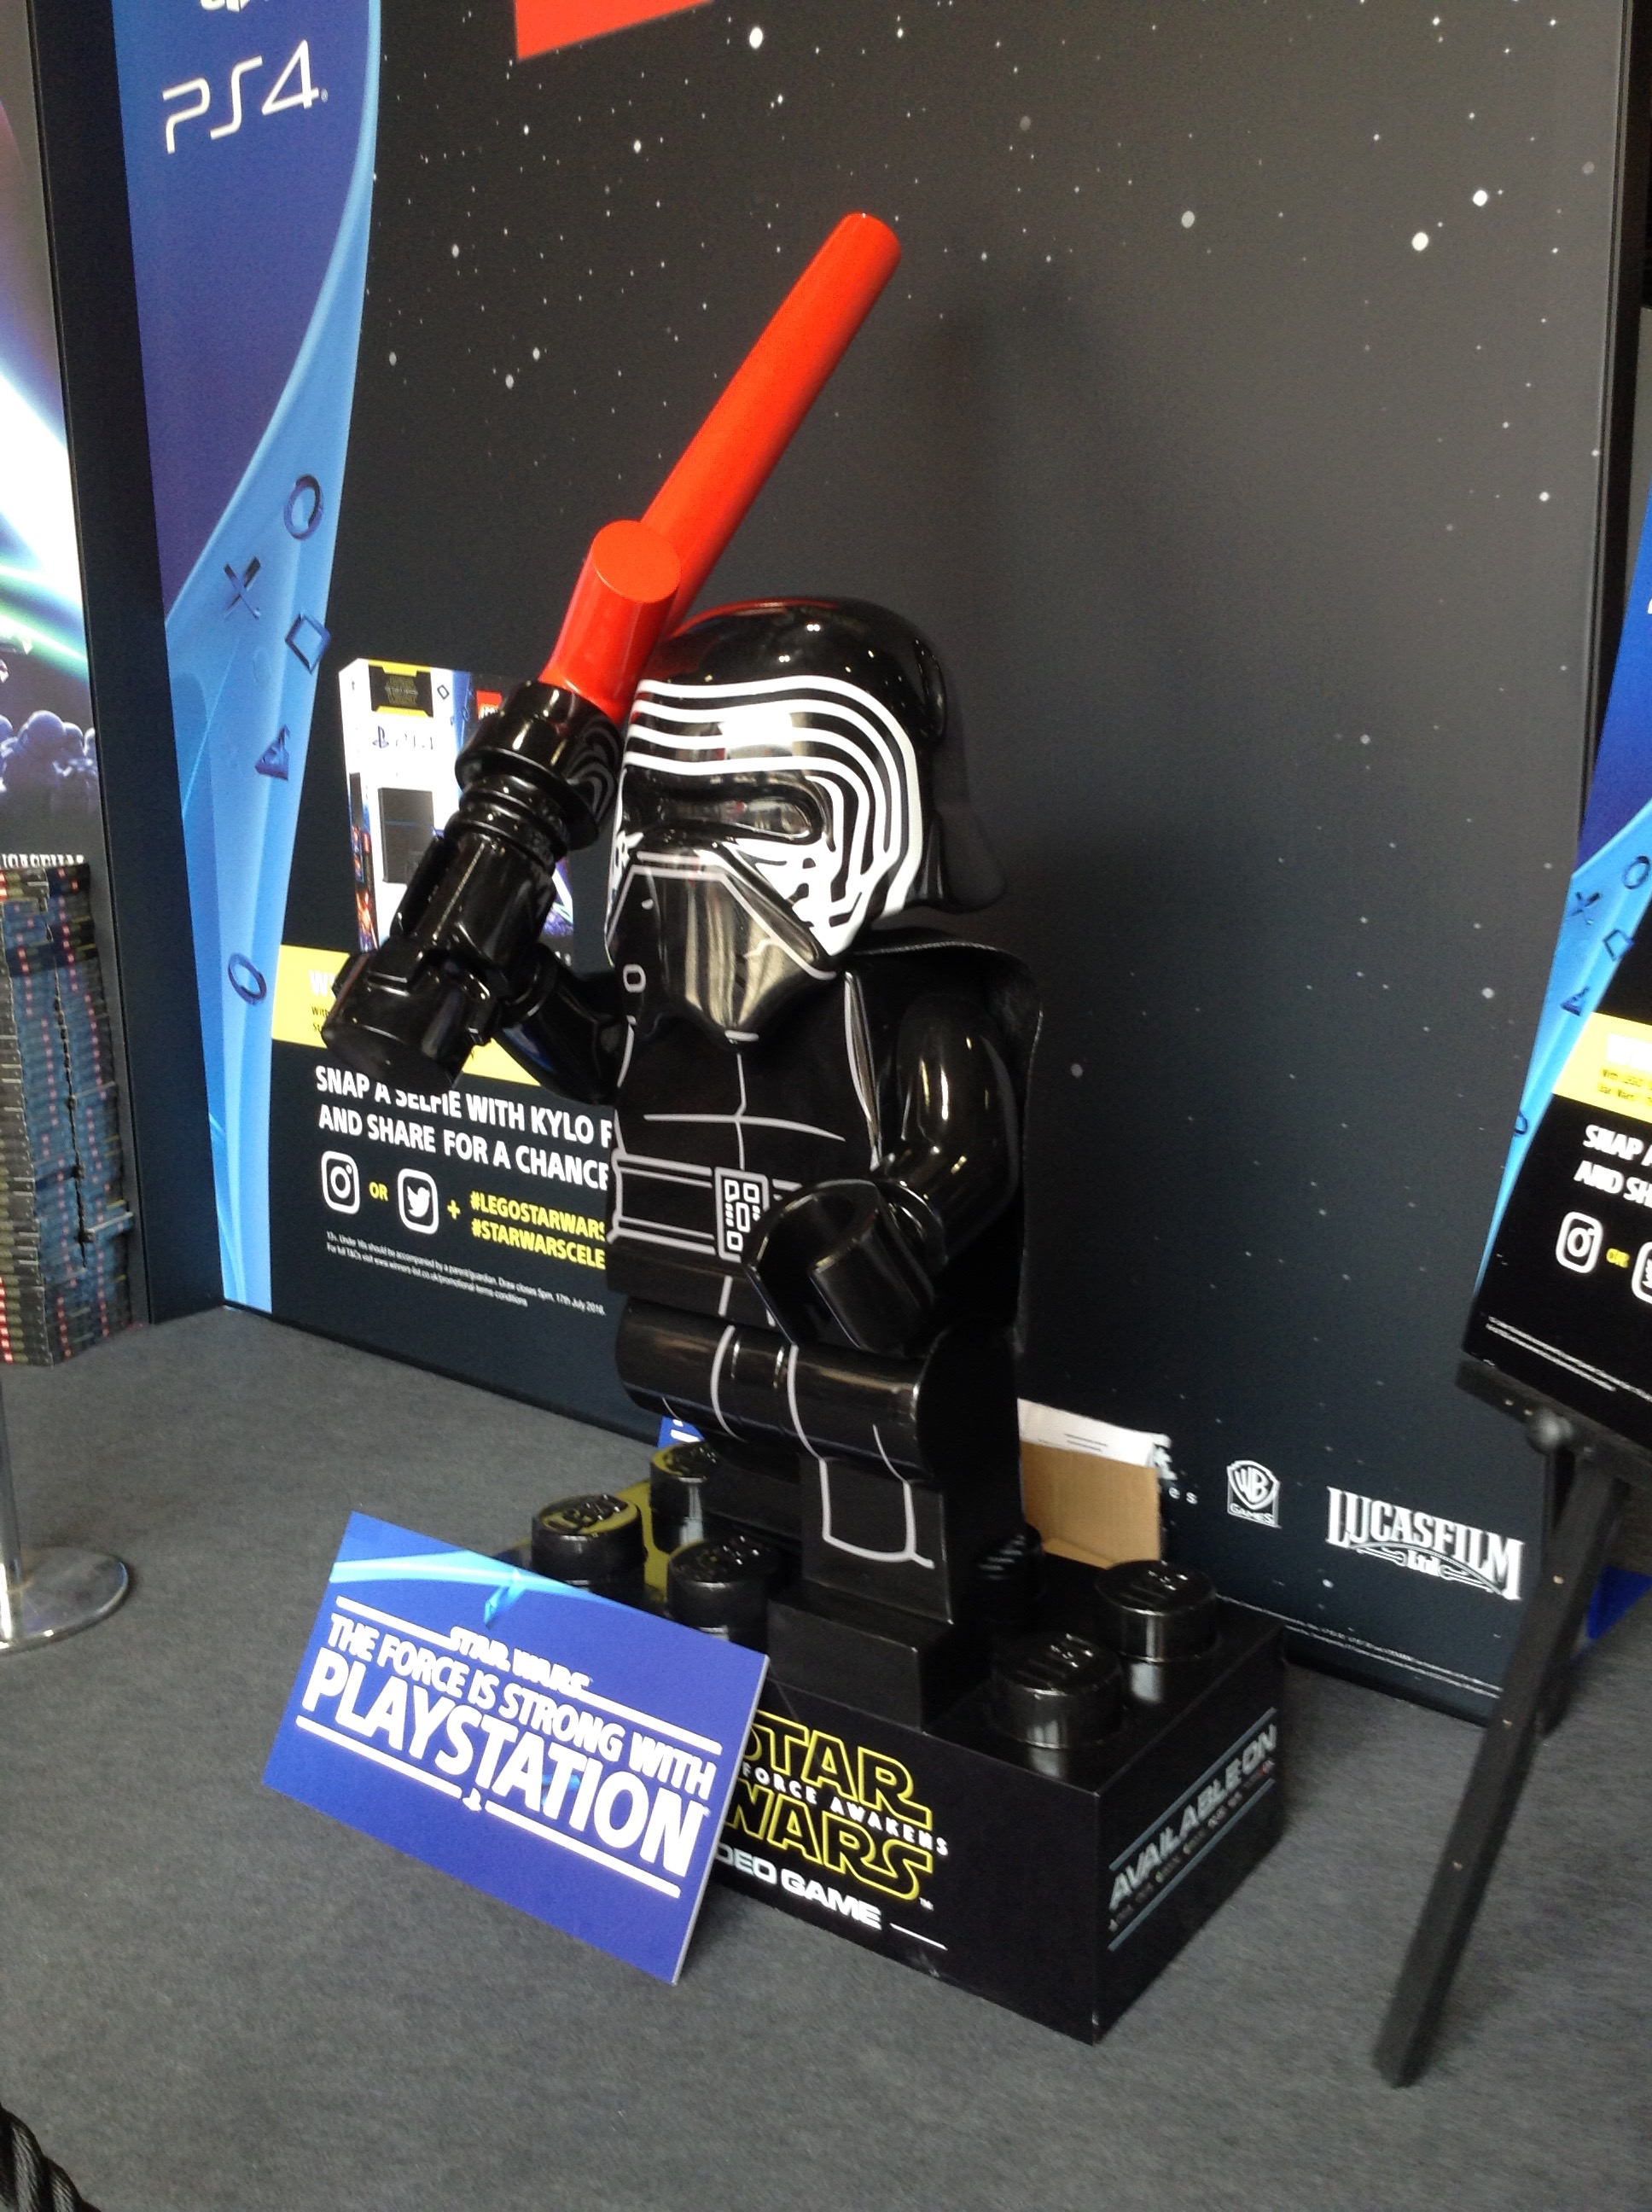 Star Wars Celebration Cosplay and Exposition 36